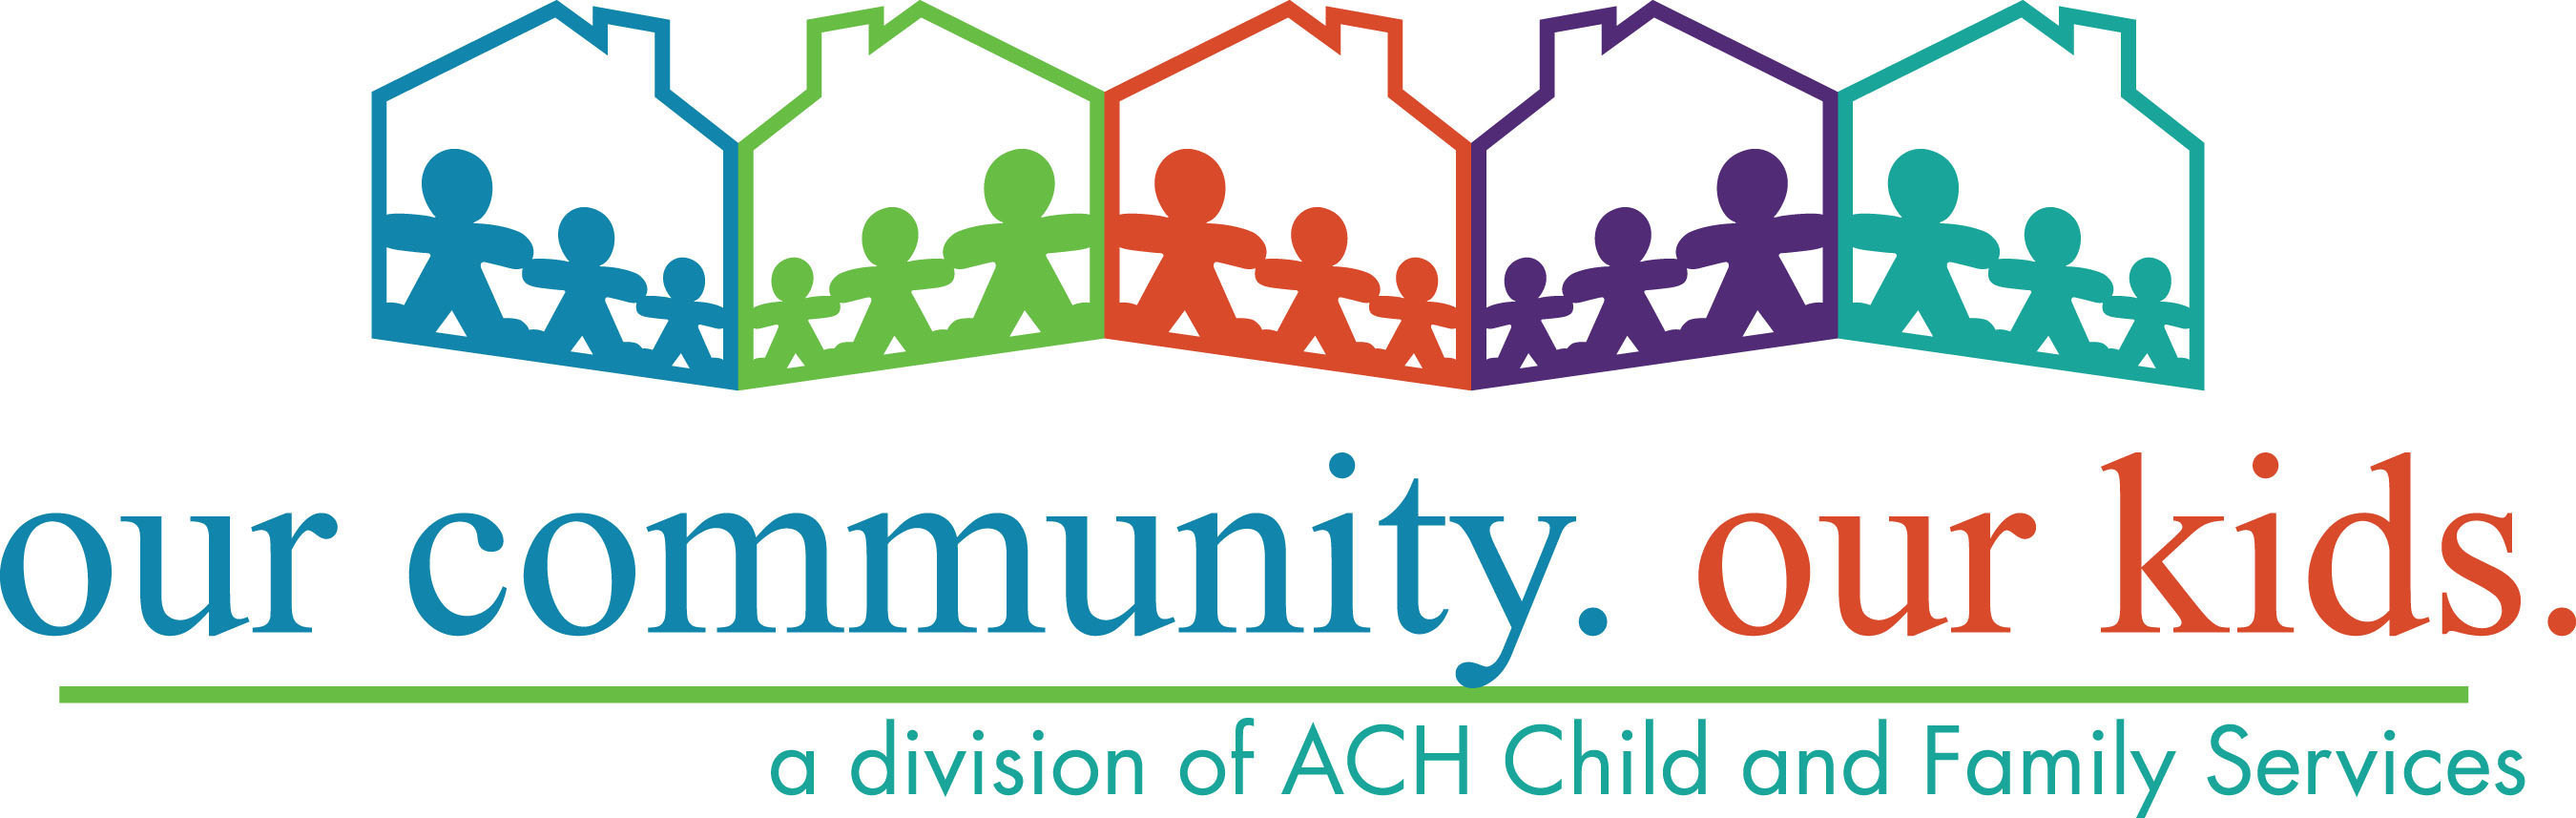 Our Community Our Kids is a division of ACH Child and Family Services in Fort Worth, Texas. Our Community Our Kids represents the first urban implementation of Foster Care Redesign in Texas.